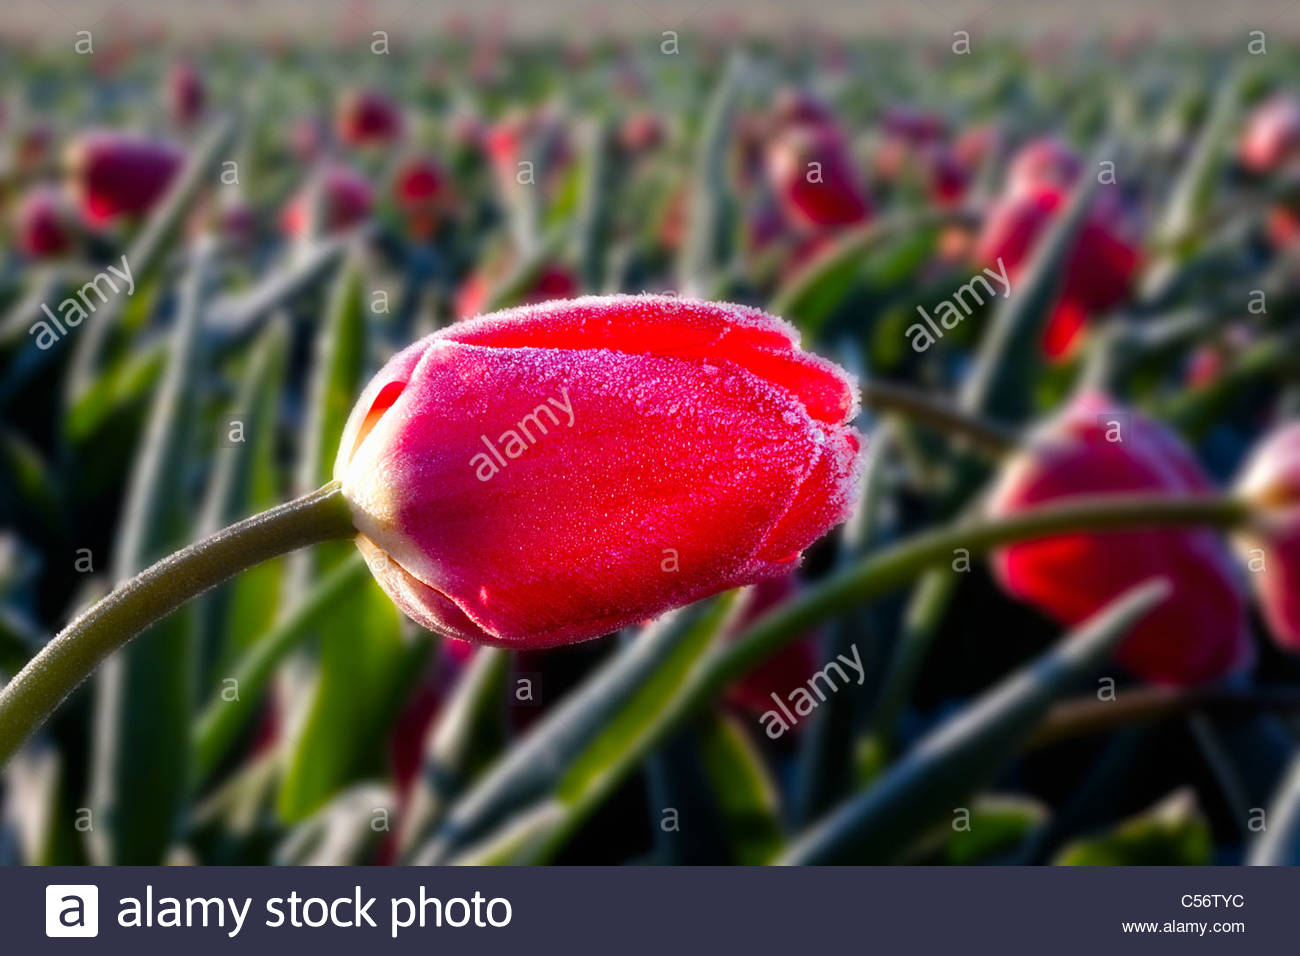 The Netherlands, Callantsoog, Flowering tulips. - Stock Image